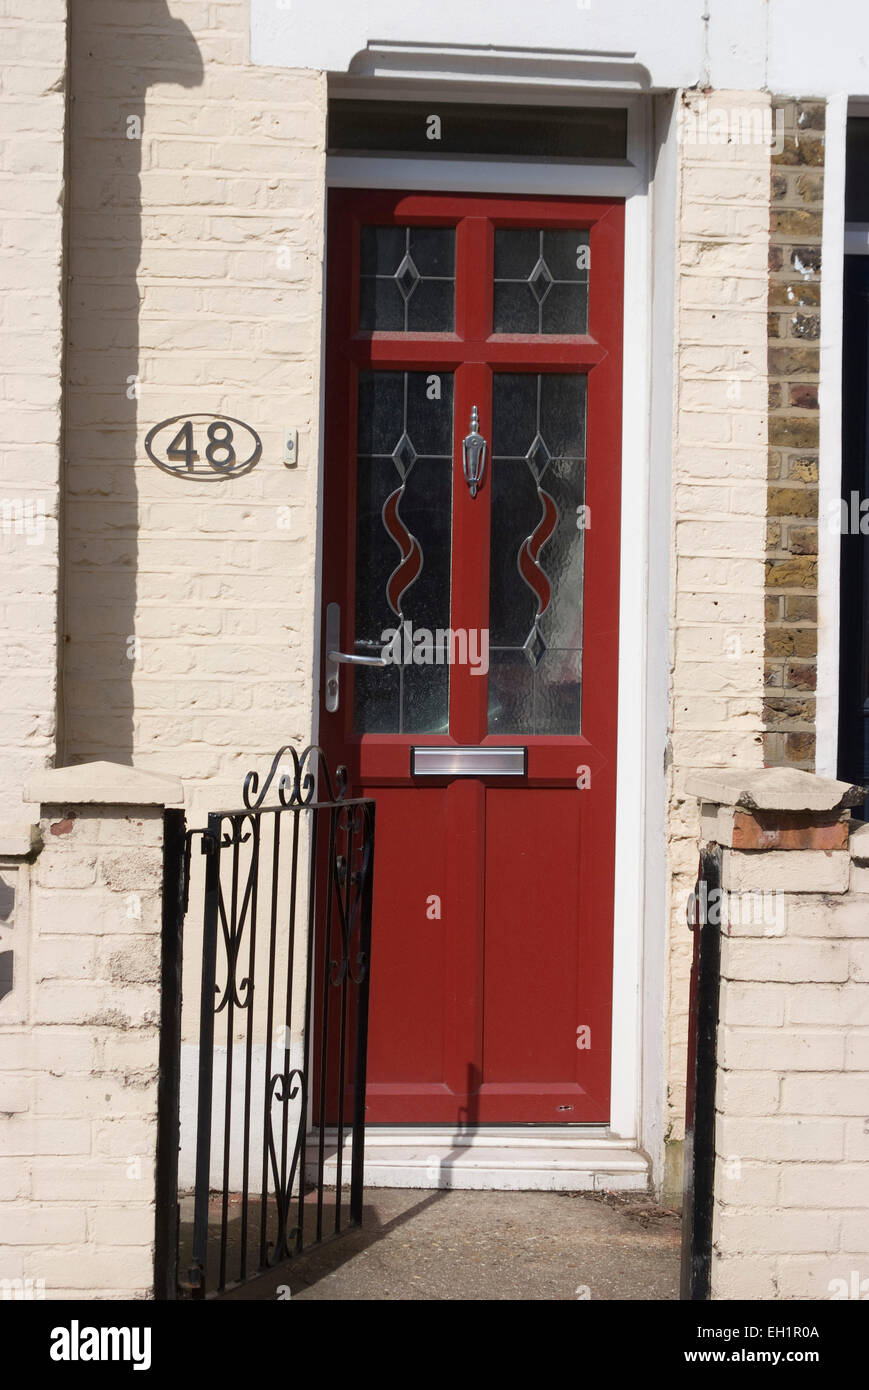 House Number 48, Greenwich, SE10, London, England, UK   Stock Image